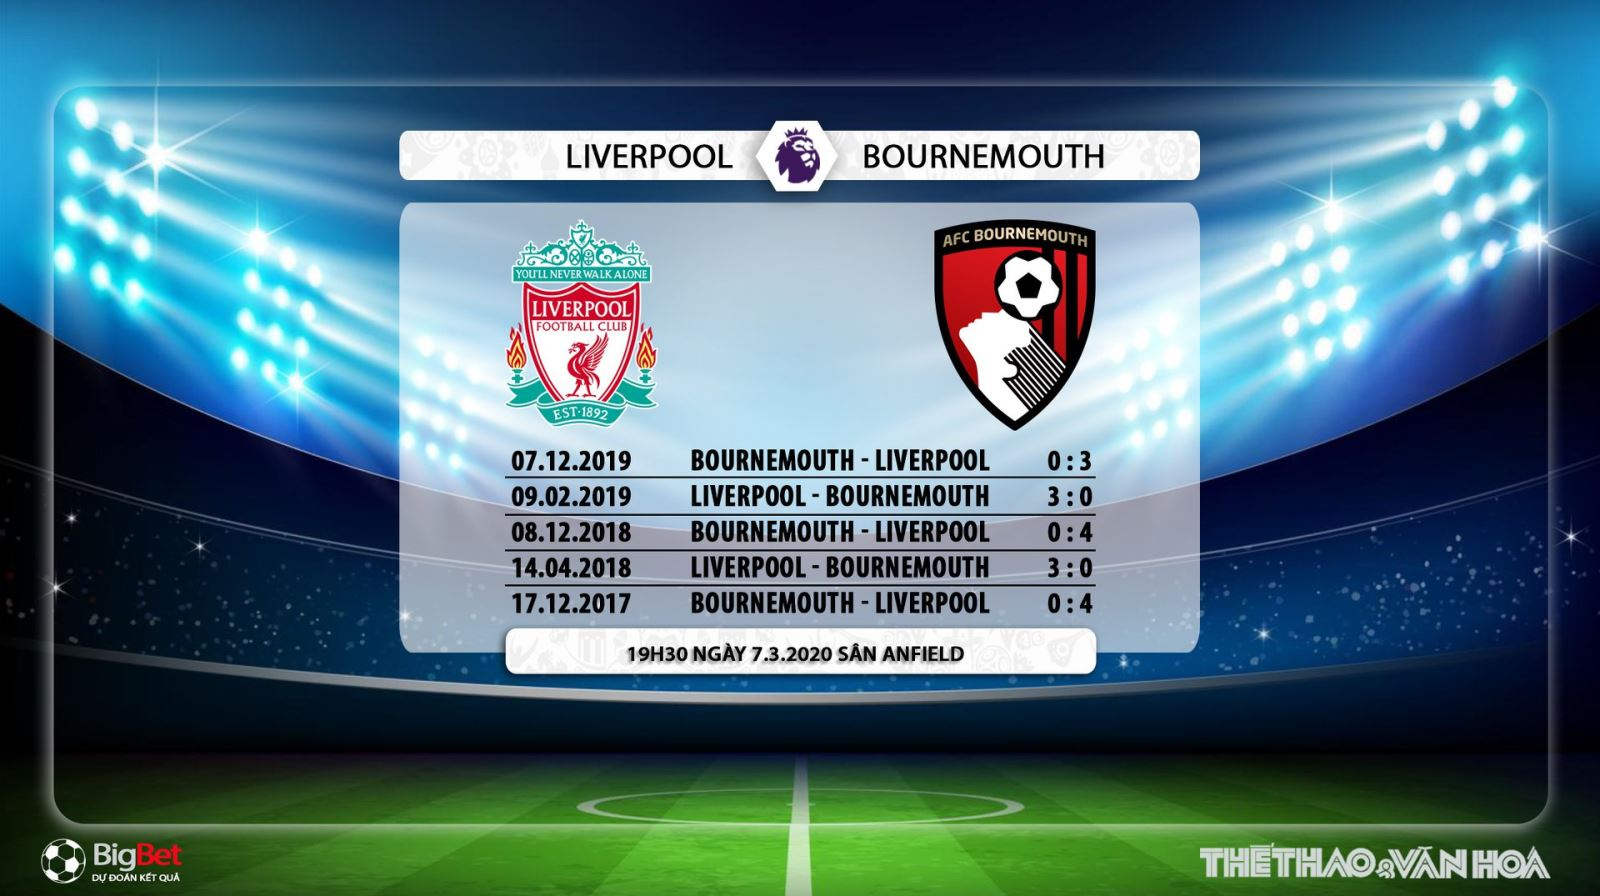 Liverpool vs Bournemouth, Liverpool, Bournemouth, nhận định Liverpool vs Bournemouth, trực tiếp Liverpool vs Bournemouth, bóng đá, bong da, ngoại hạng anh, premier league